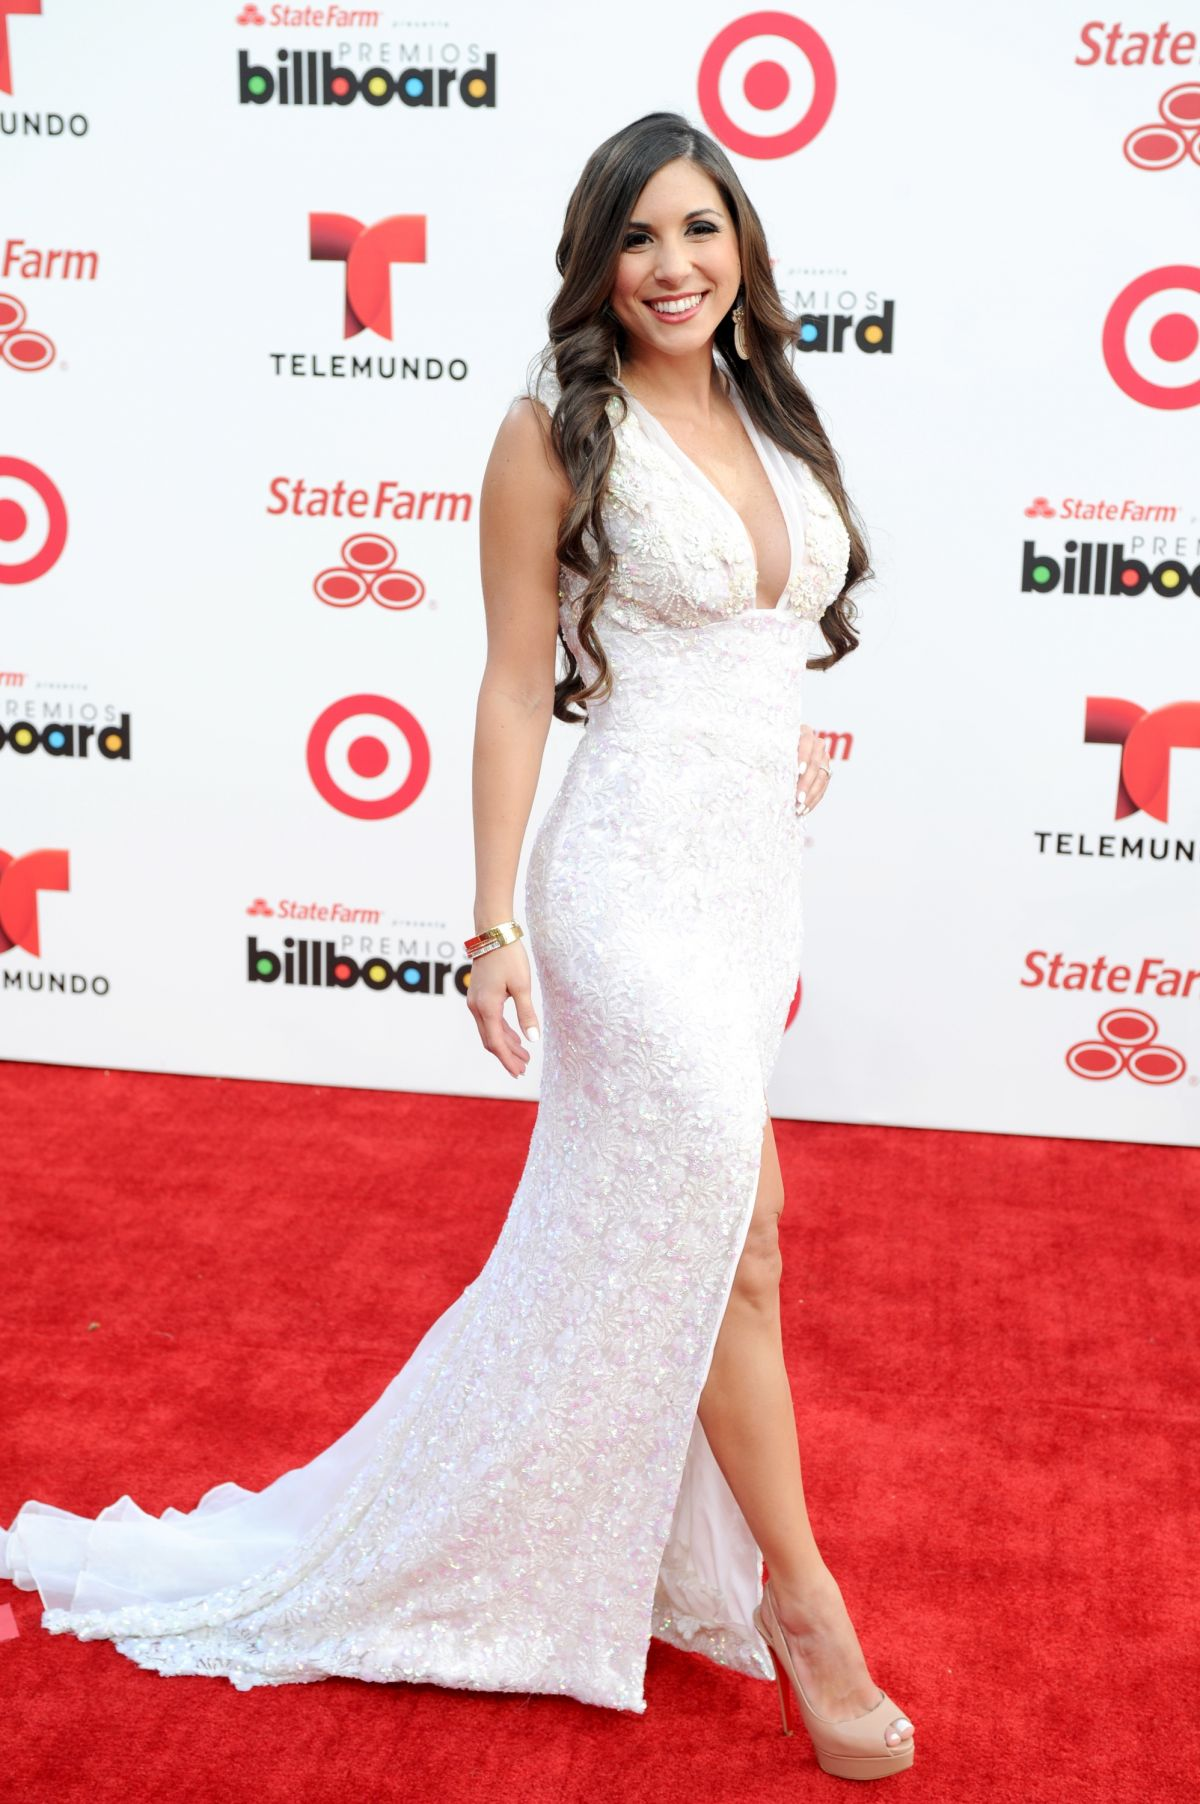 ALEXANDRA OLAVARRIA at 2014 Billboard Latin Music Awards in Miami